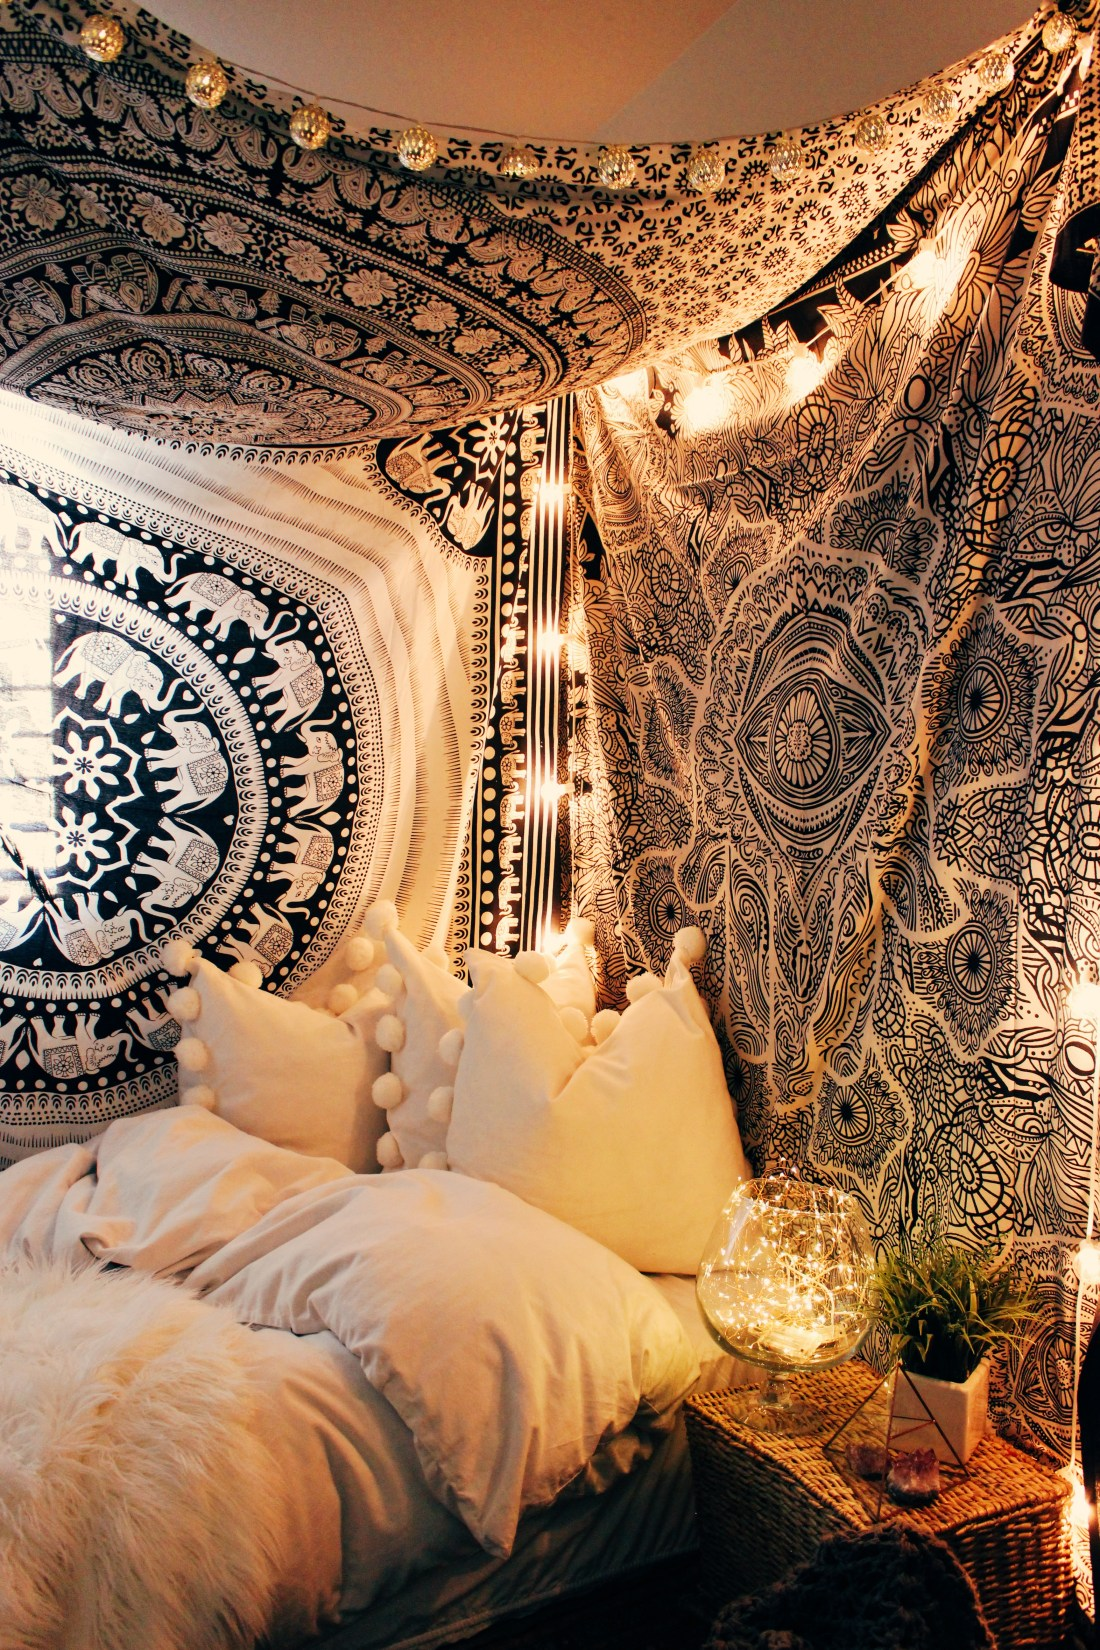 Boho Sanctuary ☽ Lady Scorpio